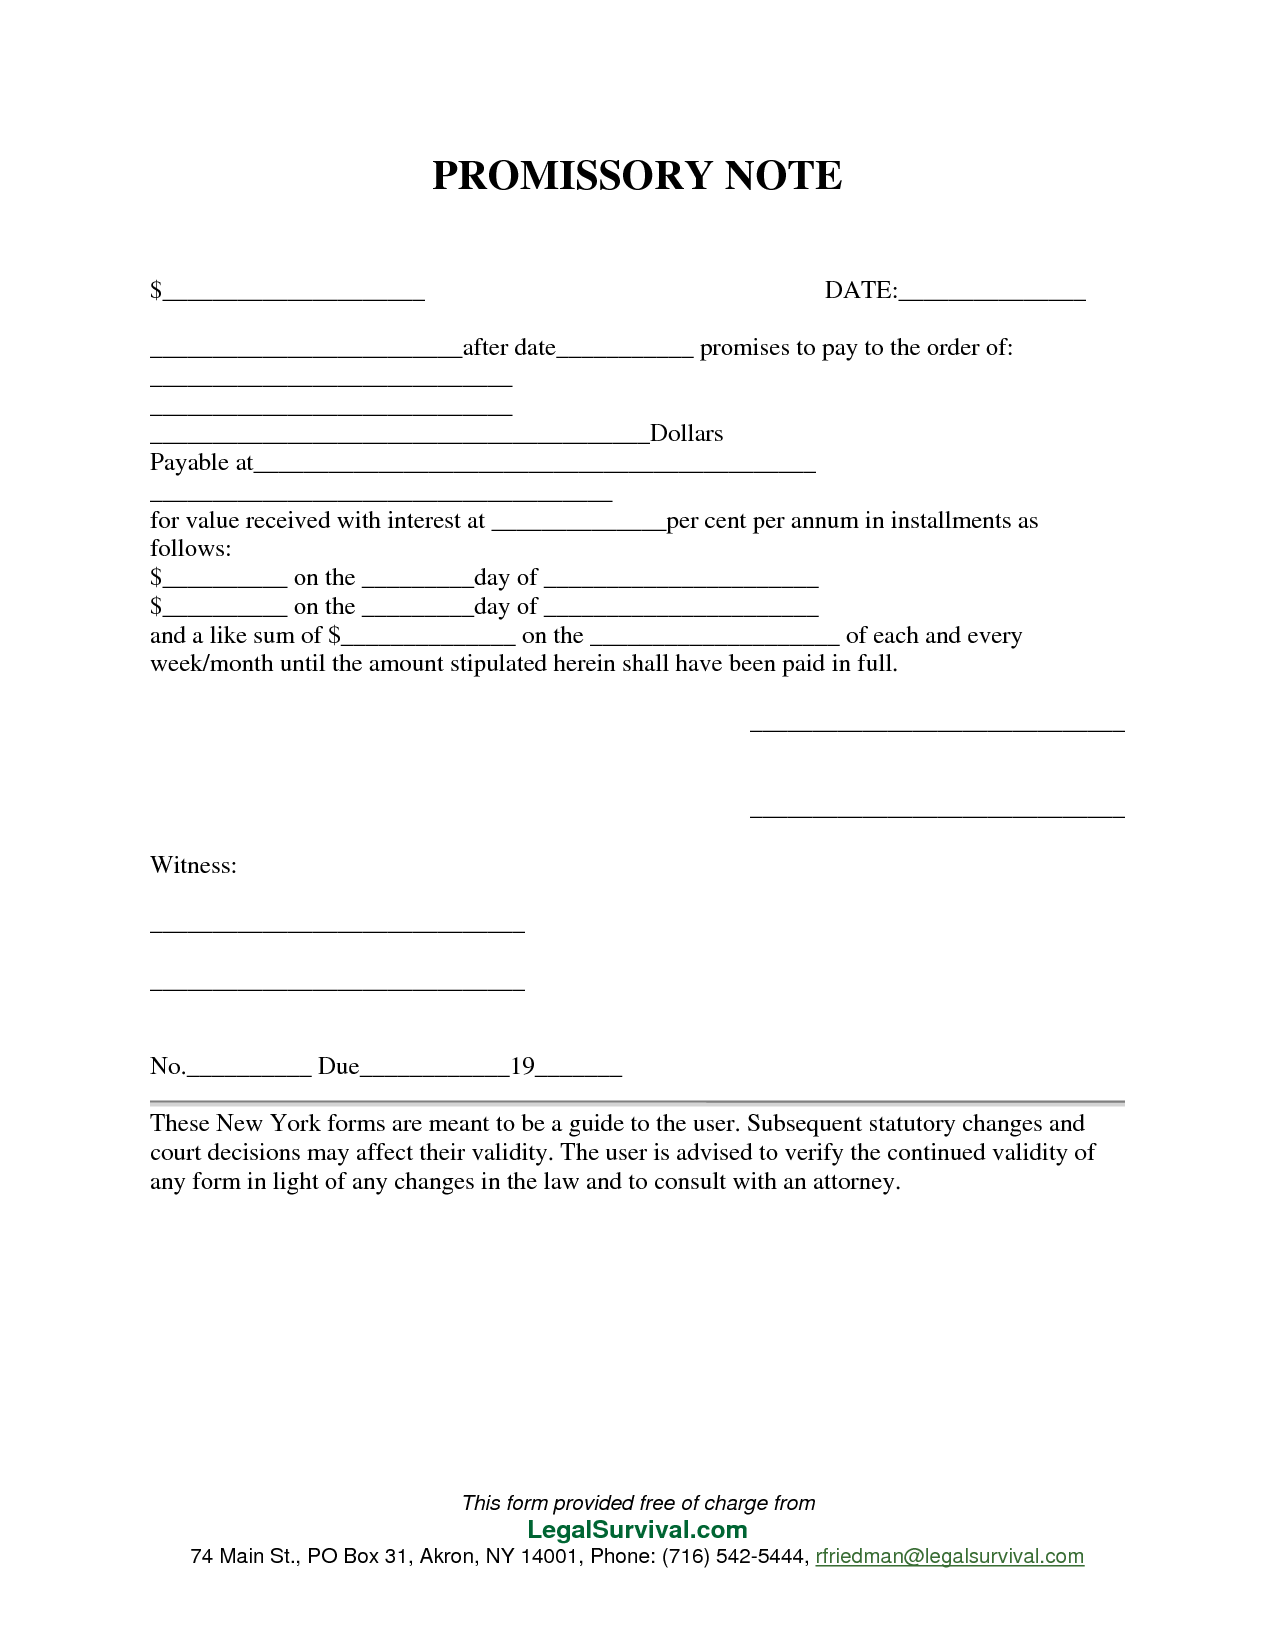 Promise Contract Template best photos of promissory contract – Promise to Pay Agreement Template